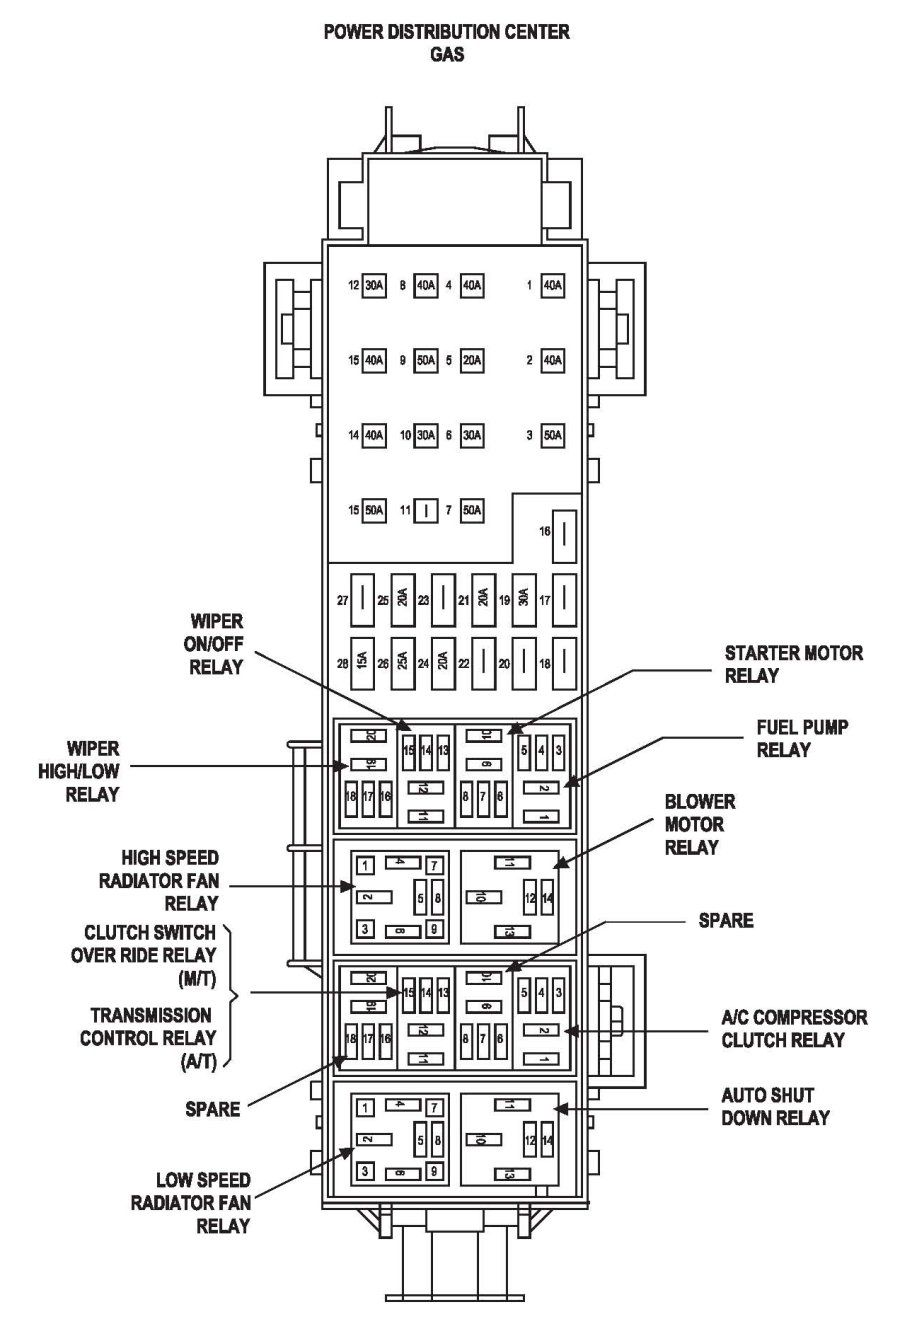 major fuse box wiring library jeep liberty fuse box diagram image details [ 900 x 1336 Pixel ]